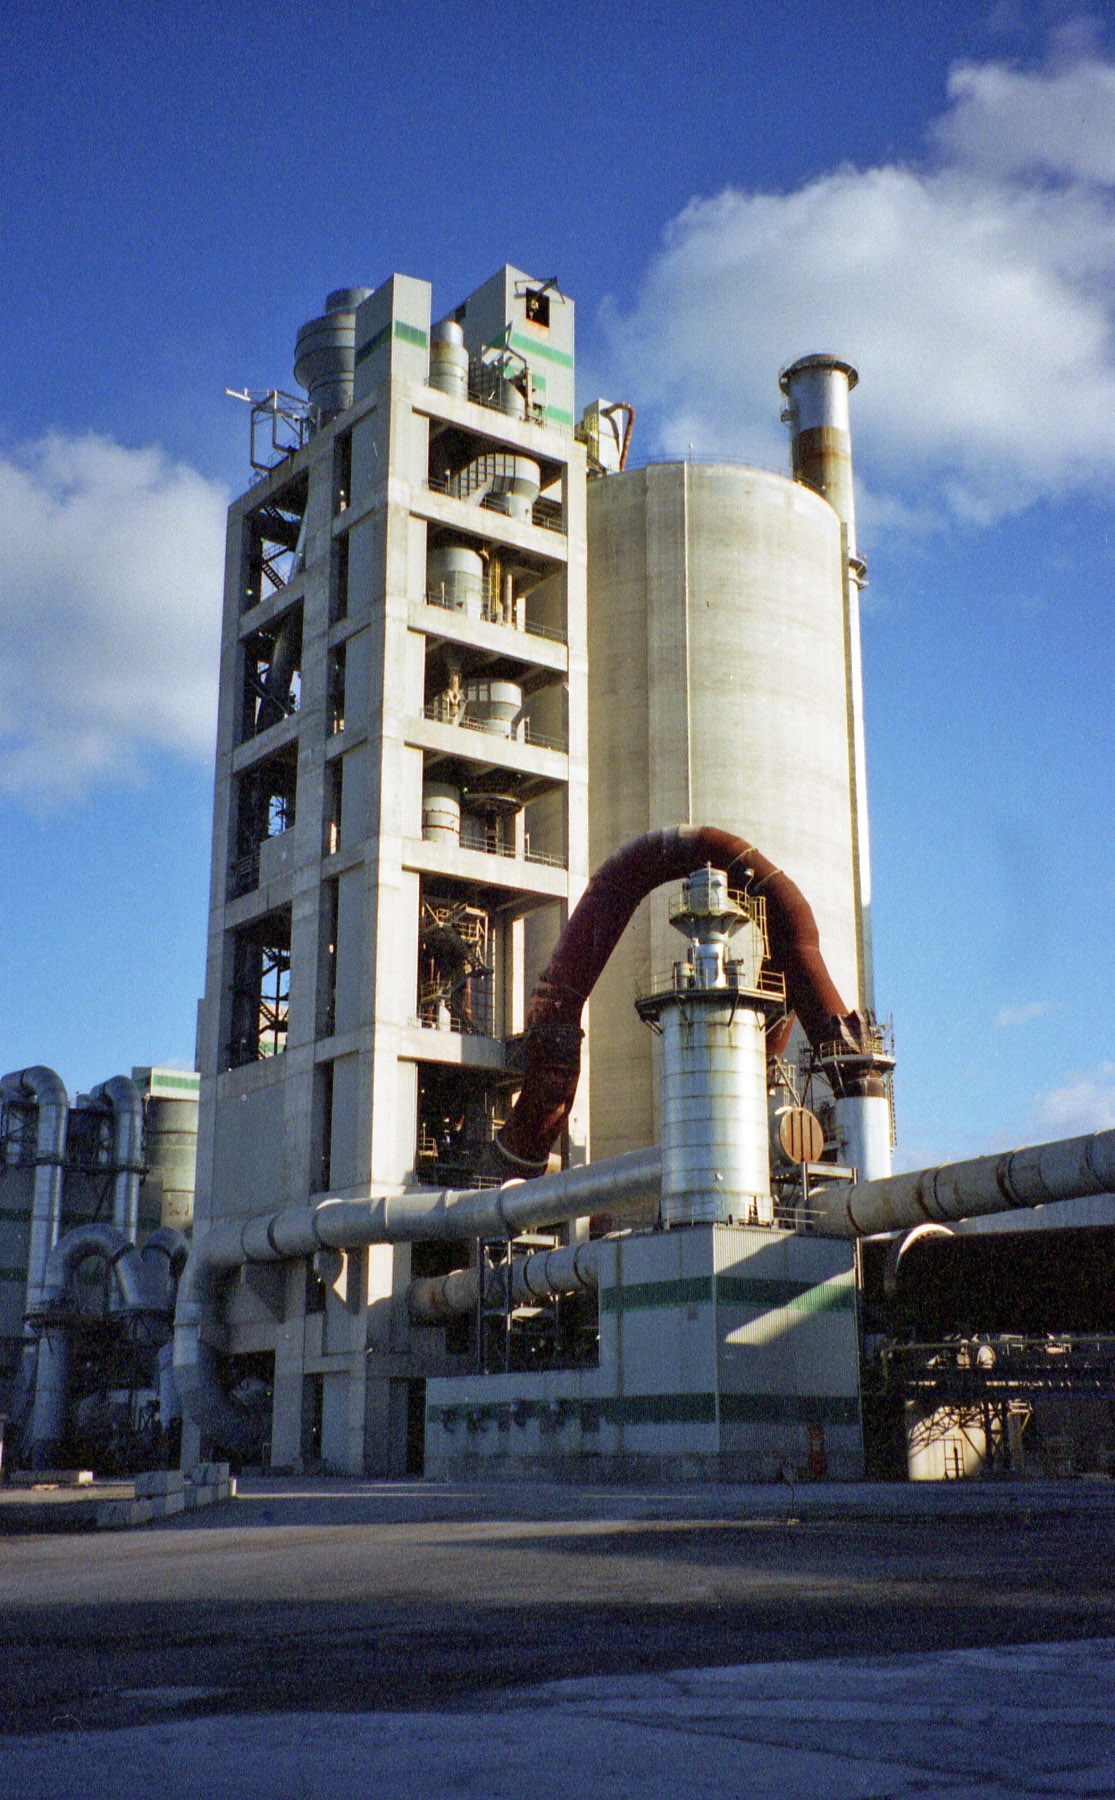 Bagging Cement Plants : File ldcement stringph g wikimedia commons